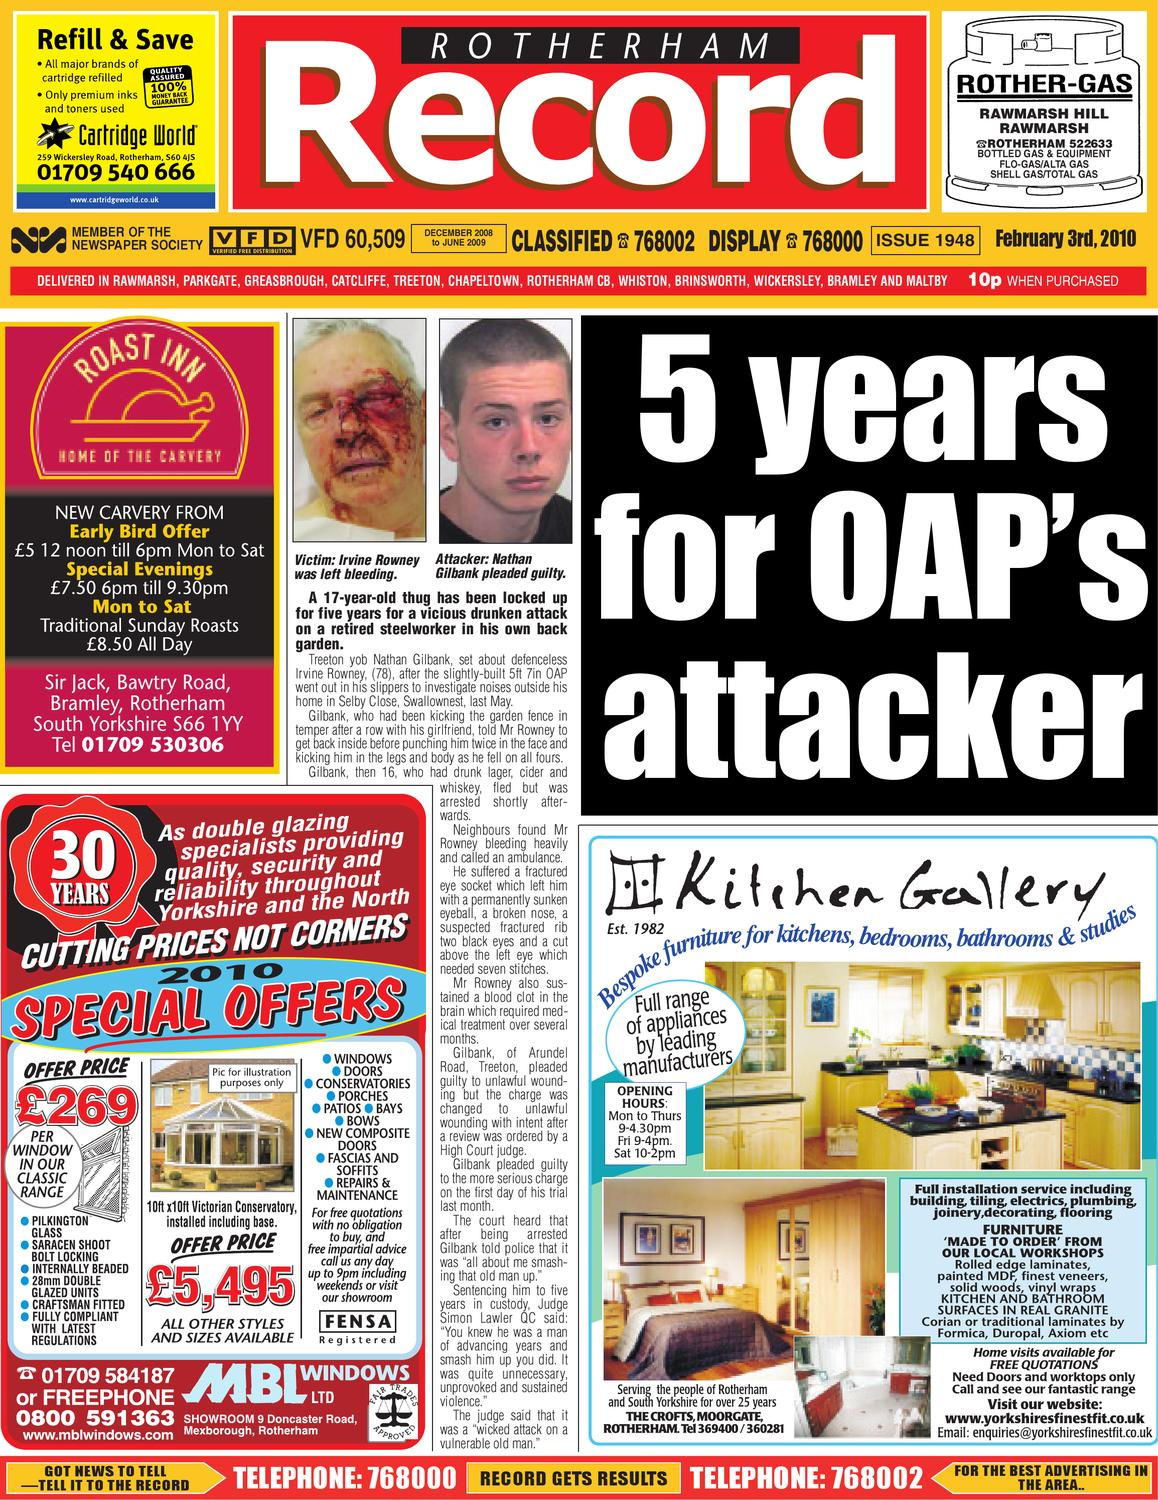 ad6c8a14e4 Rotherham Record by Rotherham Advertiser - issuu